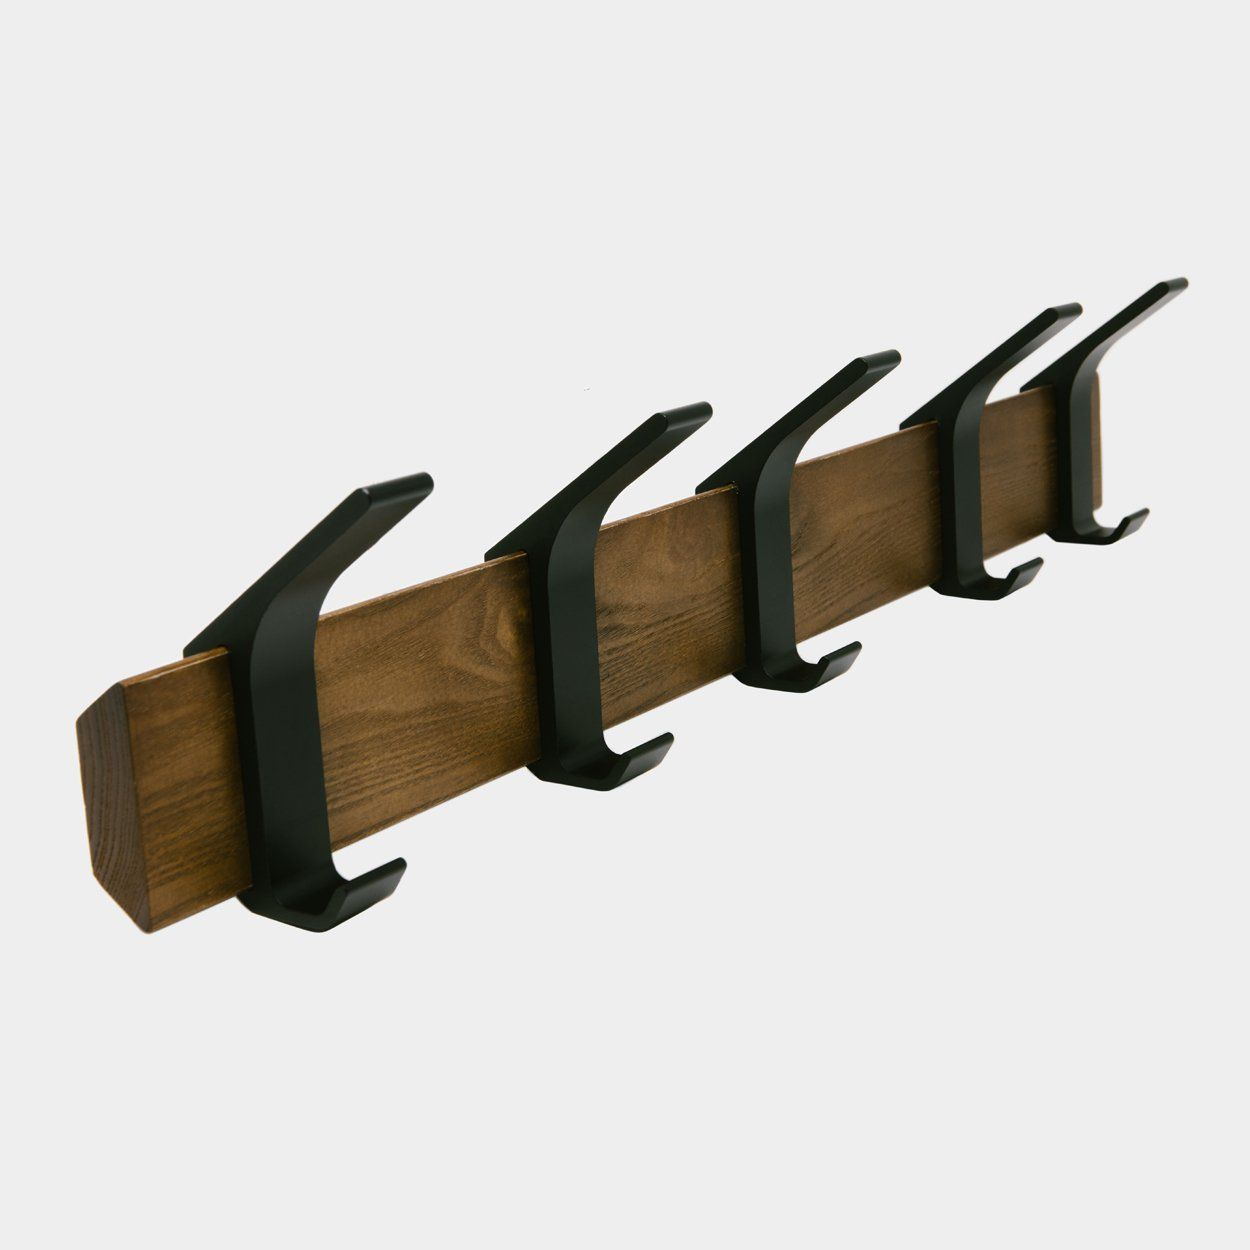 Rin Wall Mounted Coat Hanger Shop In 2020 Wall Mounted Coat Hanger Coat Hanger Hanger